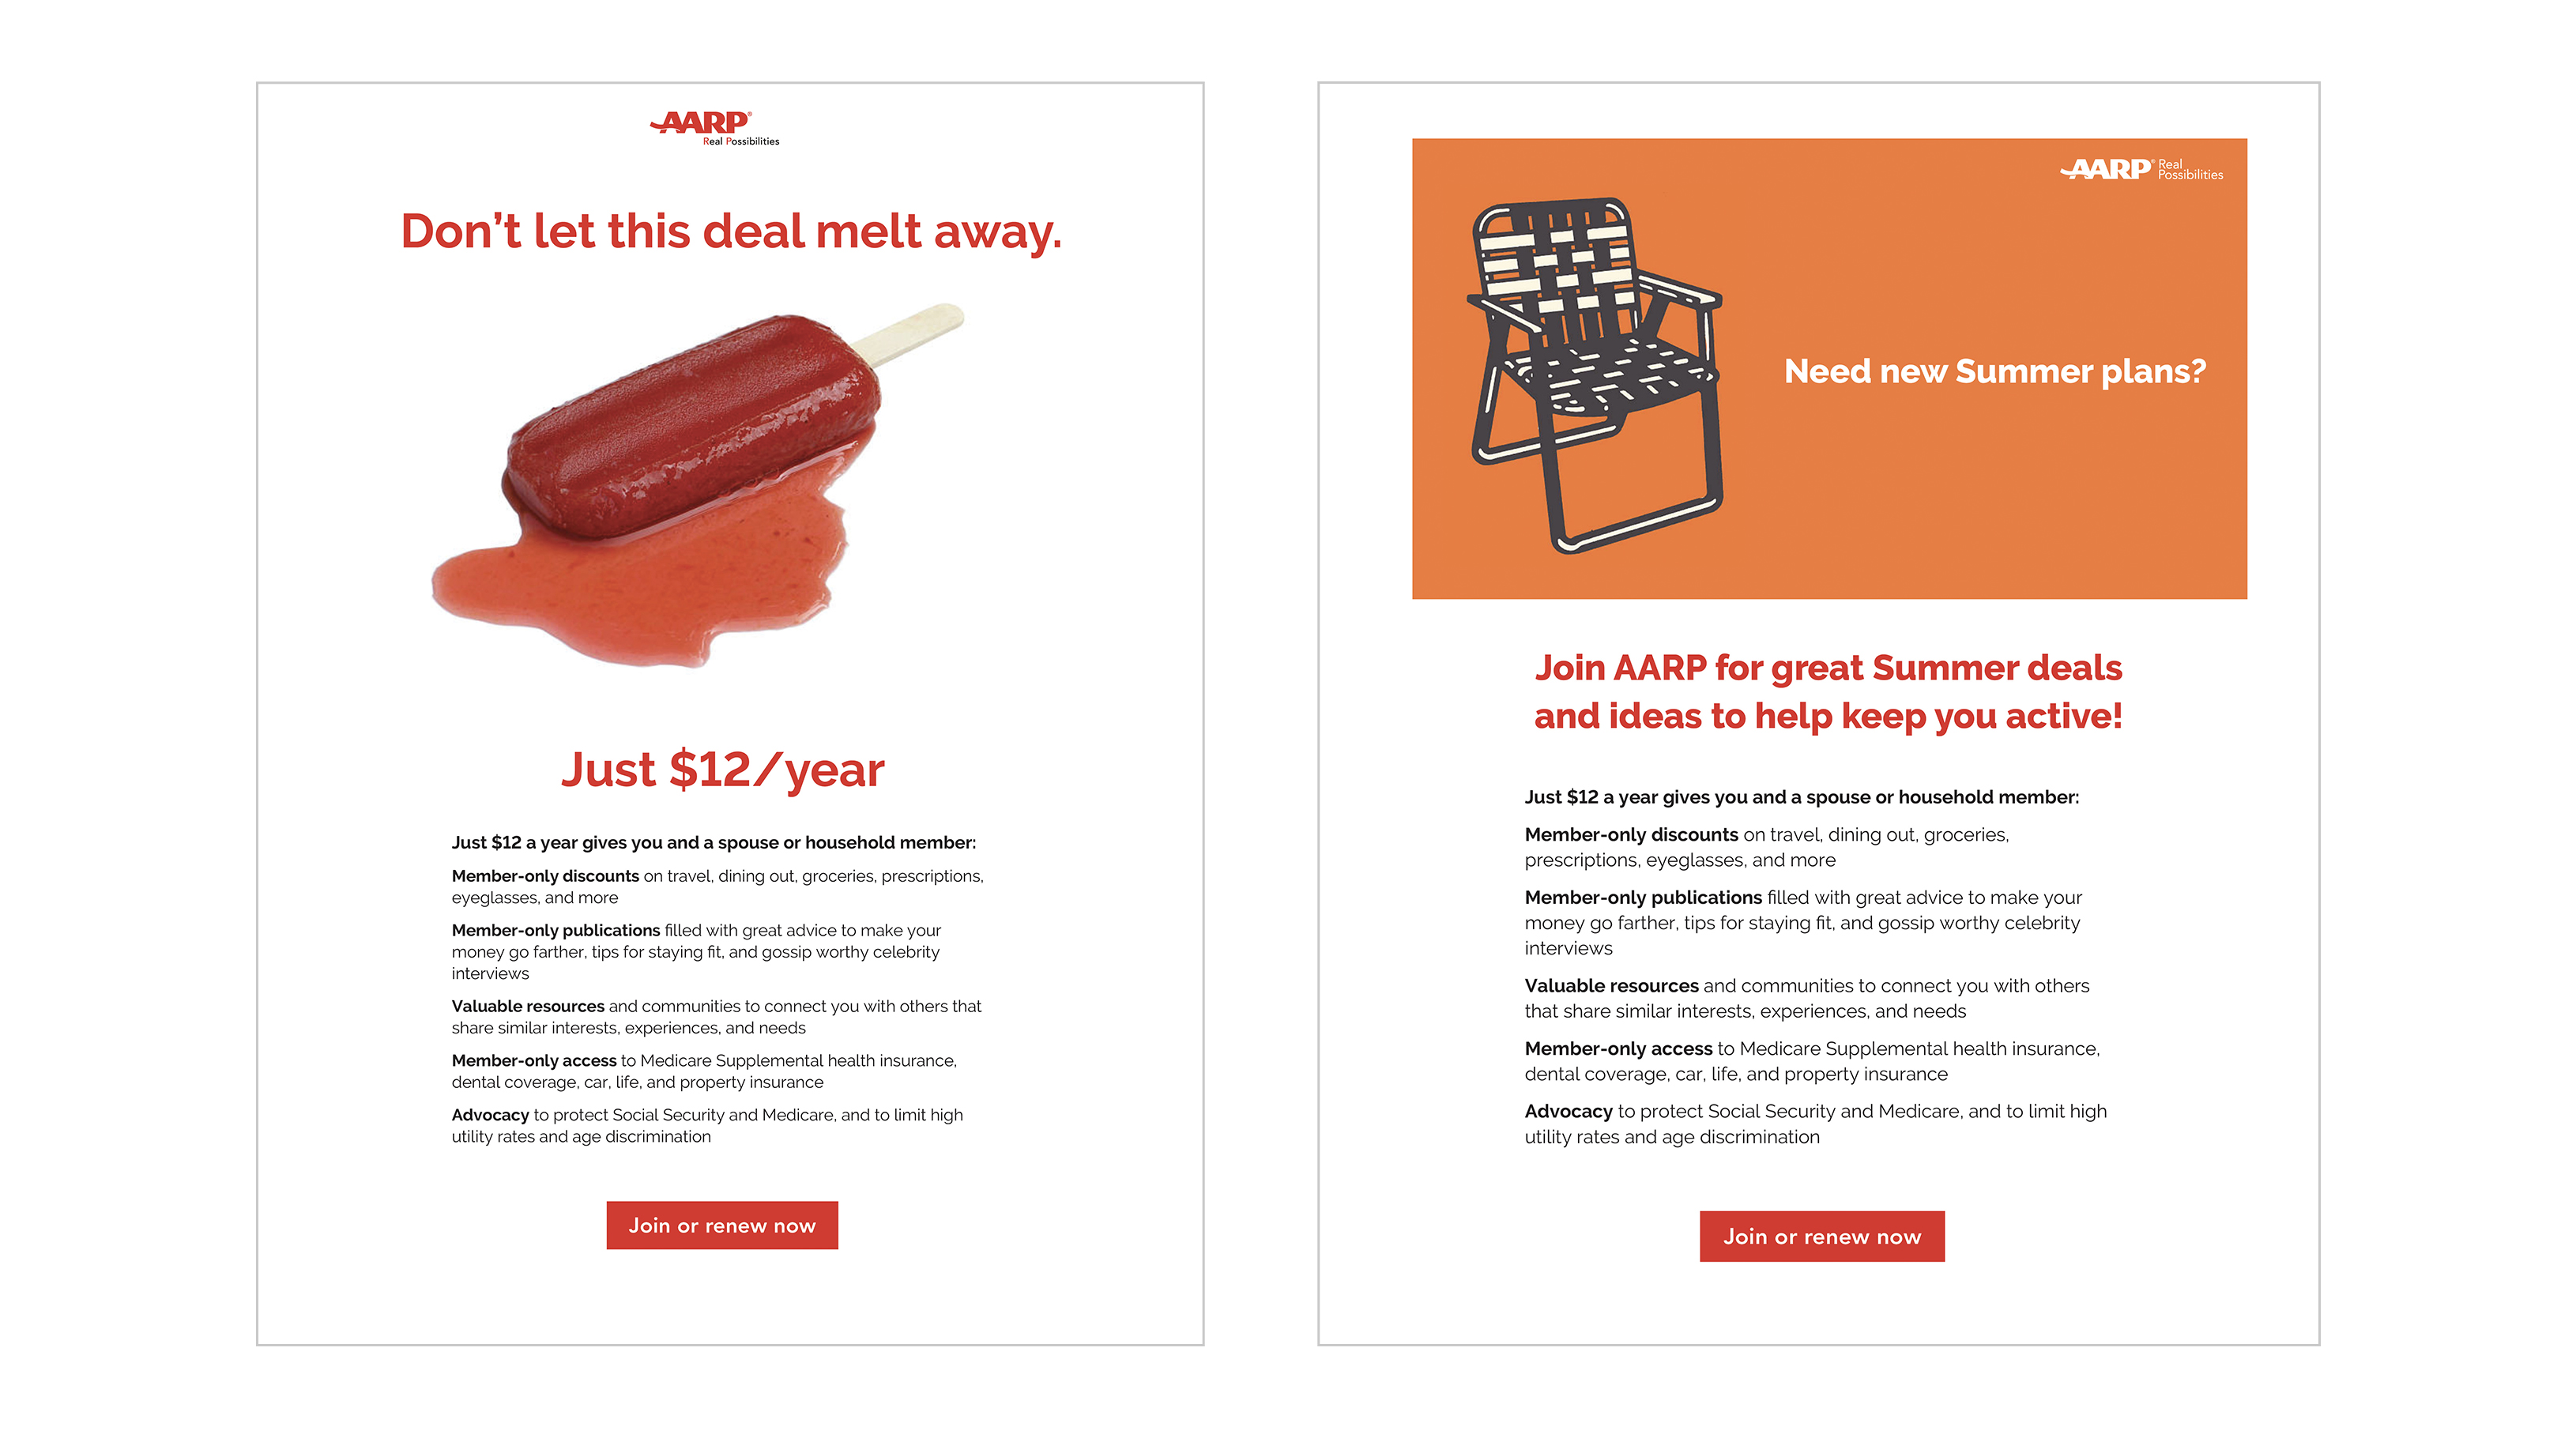 AARP HTML emails